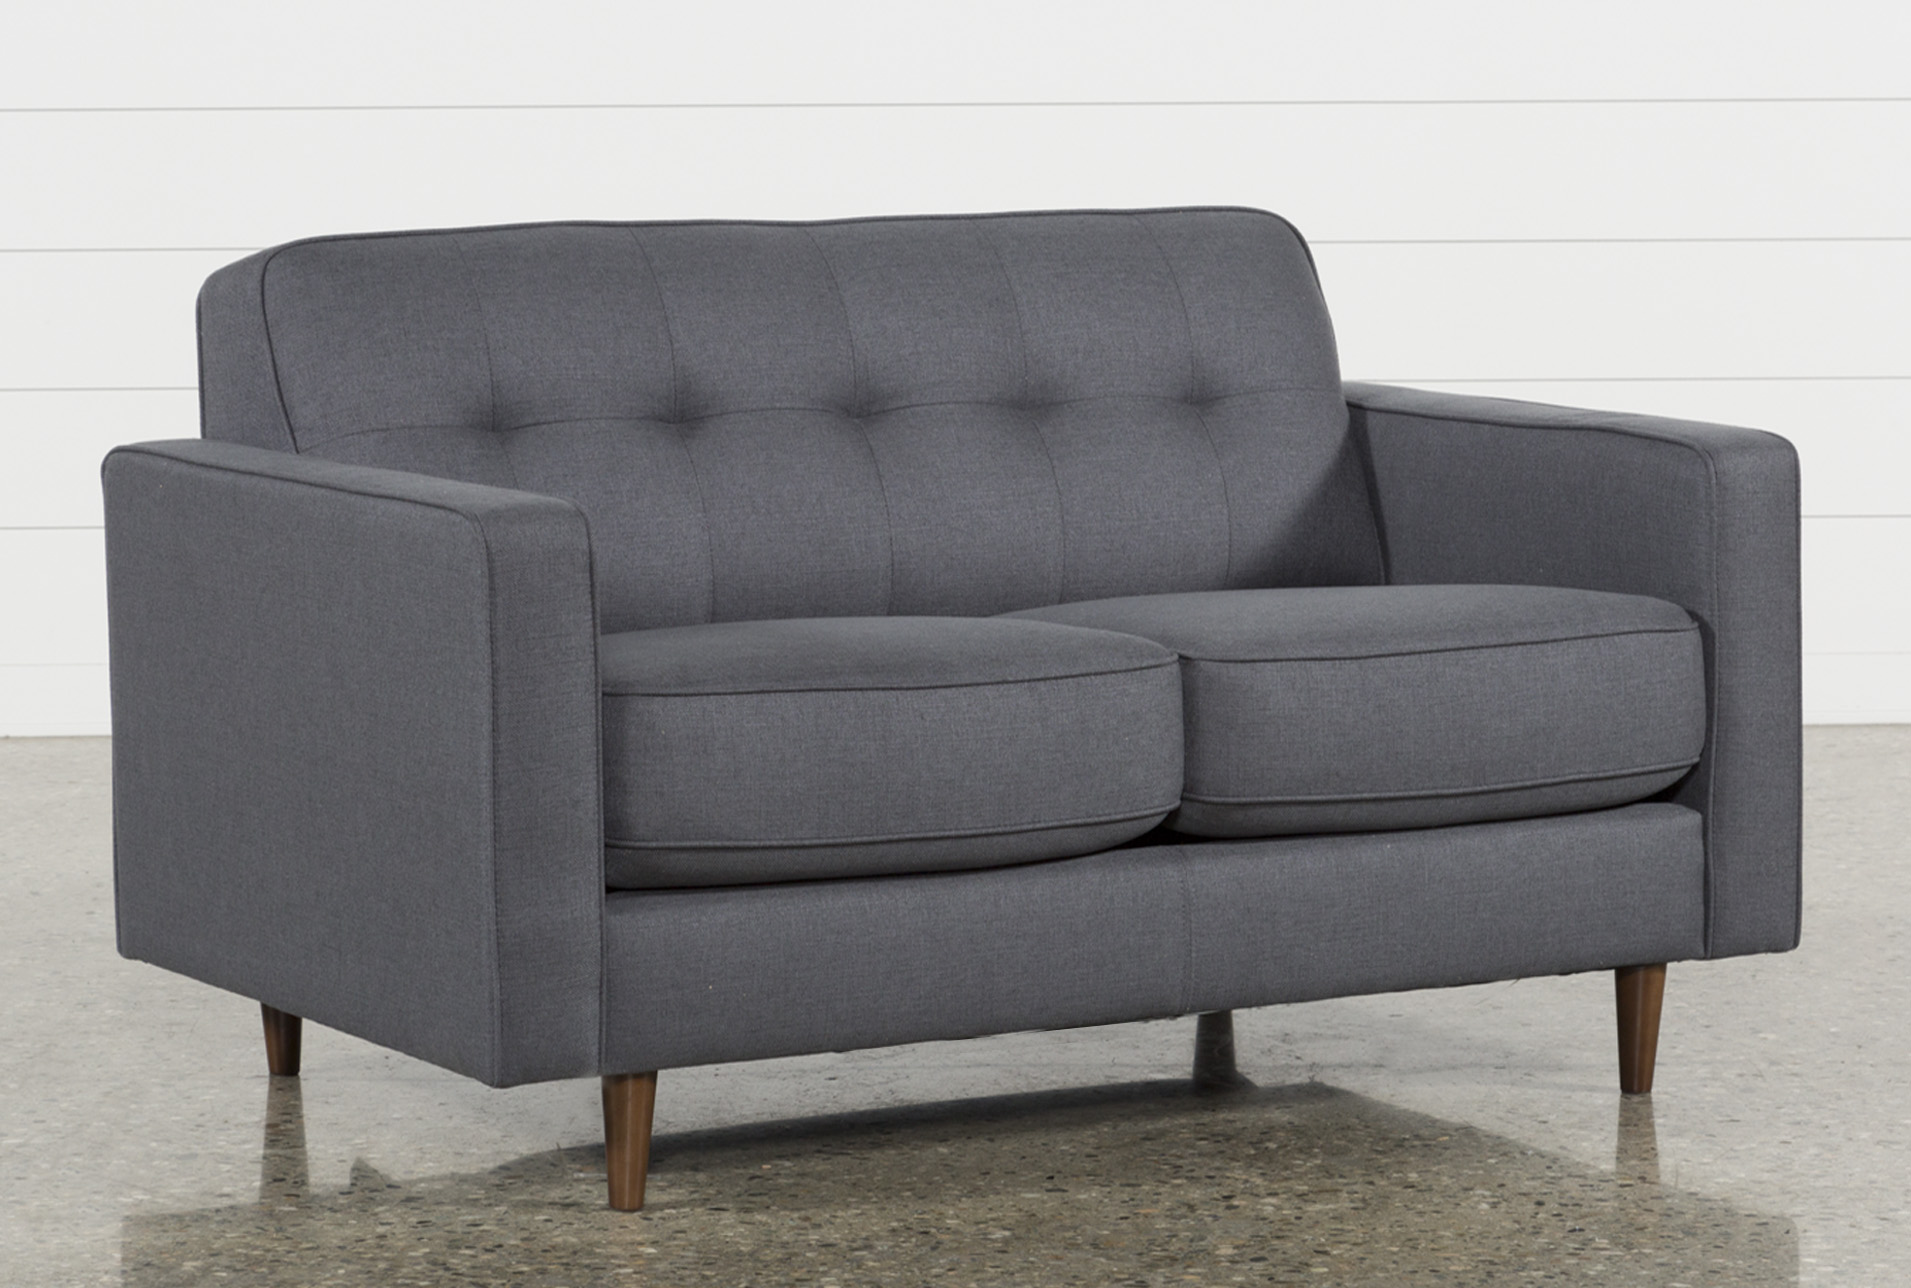 London Dark Grey Twin Plus Sleeper Sofa (Qty: 1) has been successfully  added to your Cart.